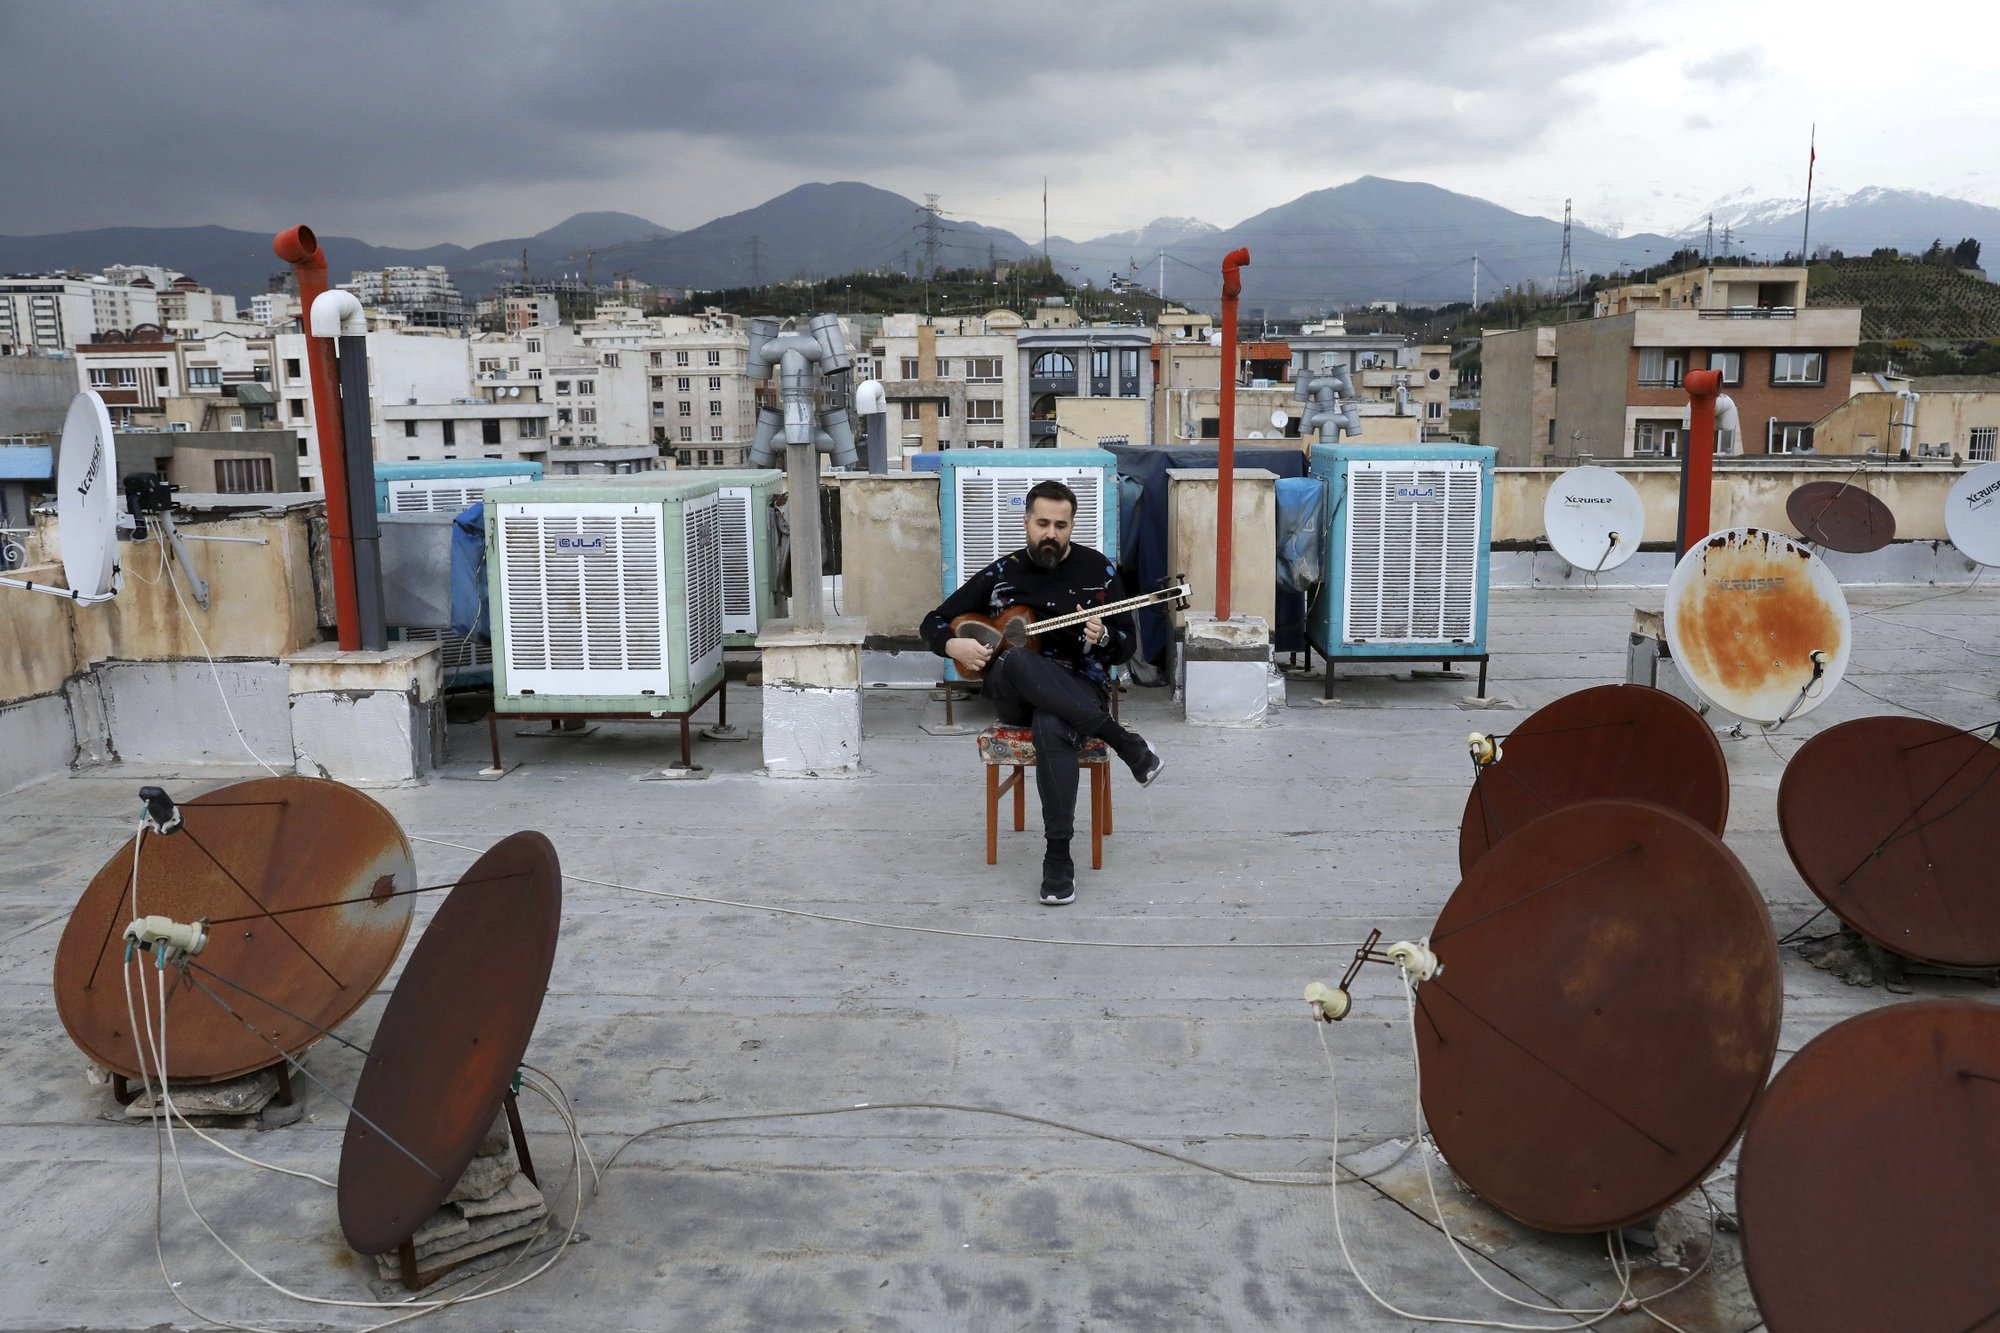 Composer and musician Midya Farajnejad, 36, plays tar on the roof of his home during mandatory self-isolation due to the new coronavirus disease outbreak, in Tehran Iran. (AP Photo/Ebrahim Noroozi)